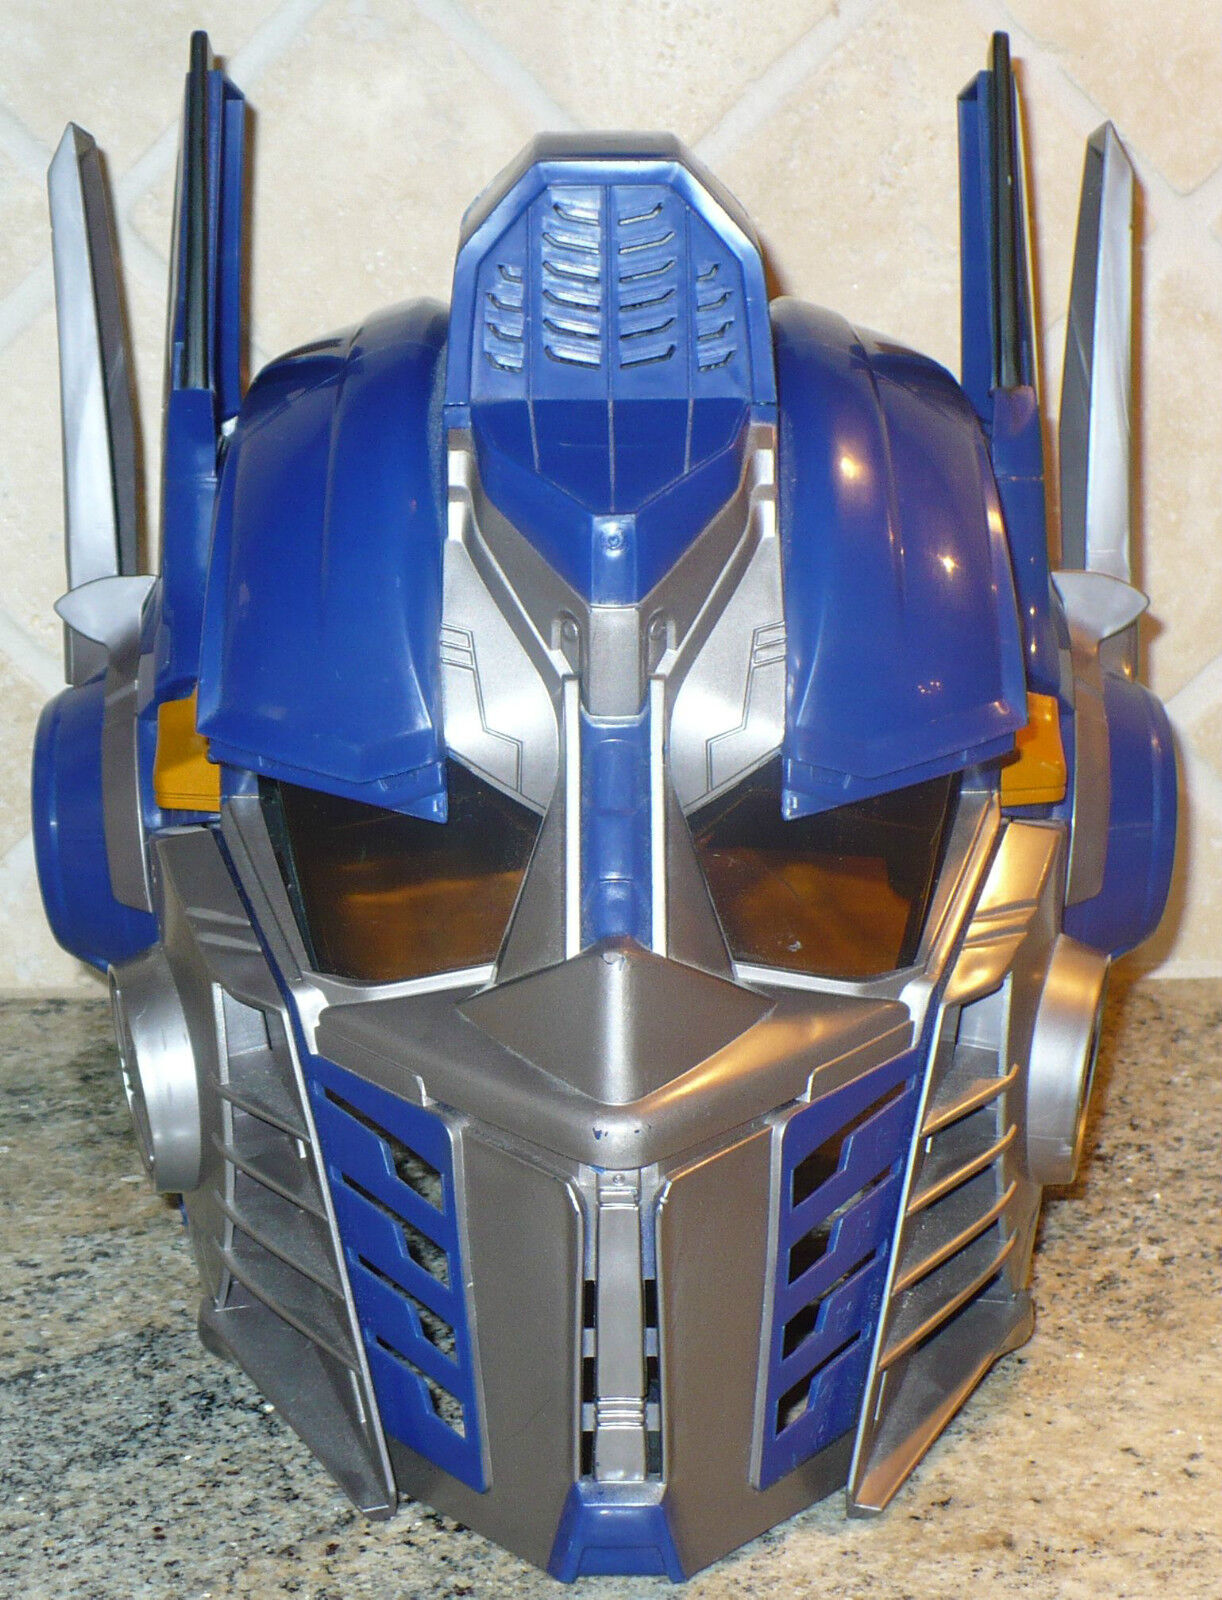 2006 HASBRO HASBRO HASBRO TRANSFORMERS OPTIMUS PRIME TALKING HELMET MASK fff09d